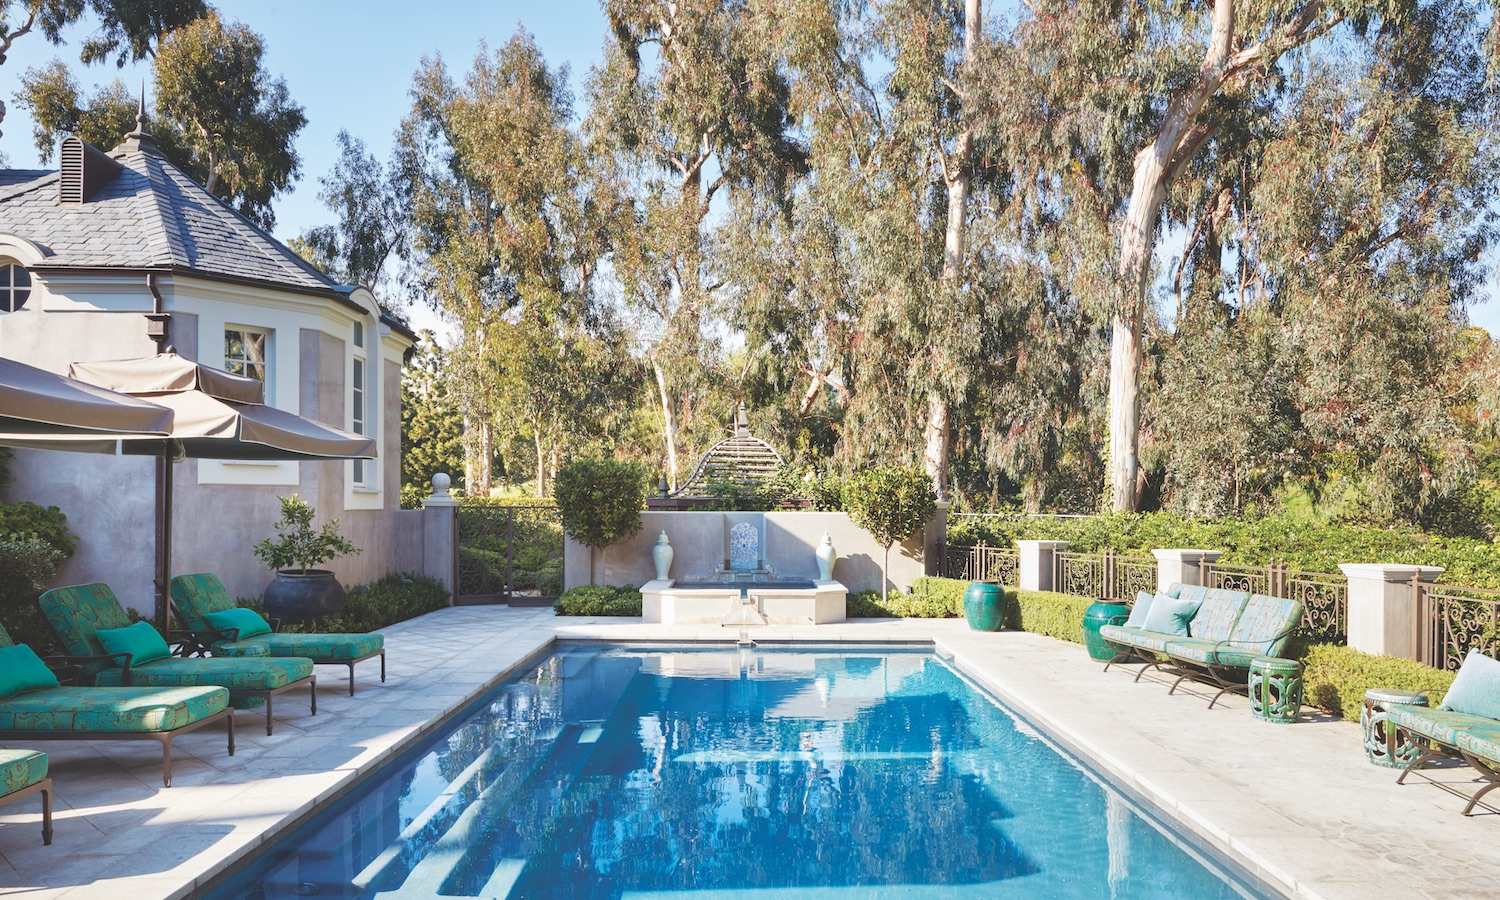 Dream Backyard Design at a Los Angeles Estate - Luxury ... on Dream Backyard With Pool id=15201